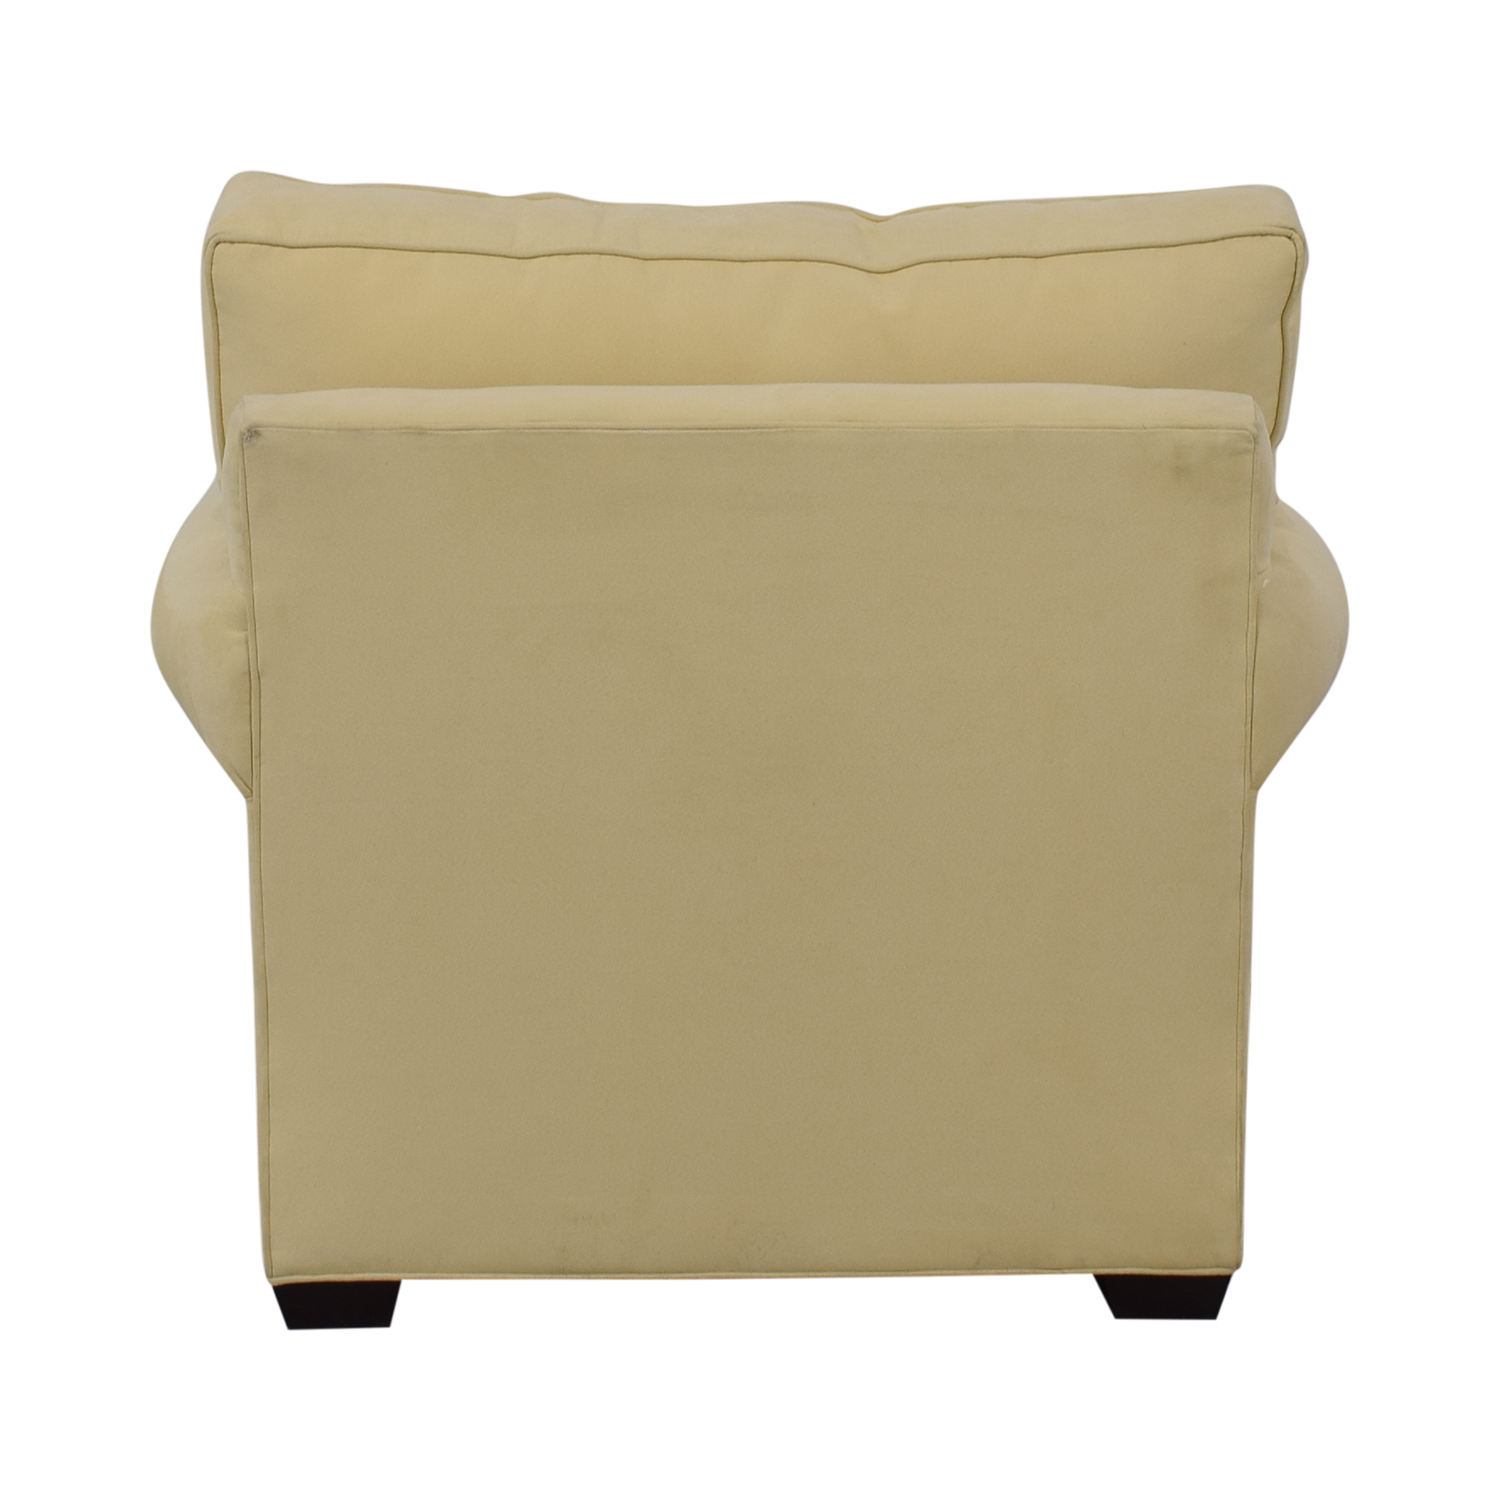 Crate & Barrel Crate & Barrel Yellow Oversized Accent Chair for sale